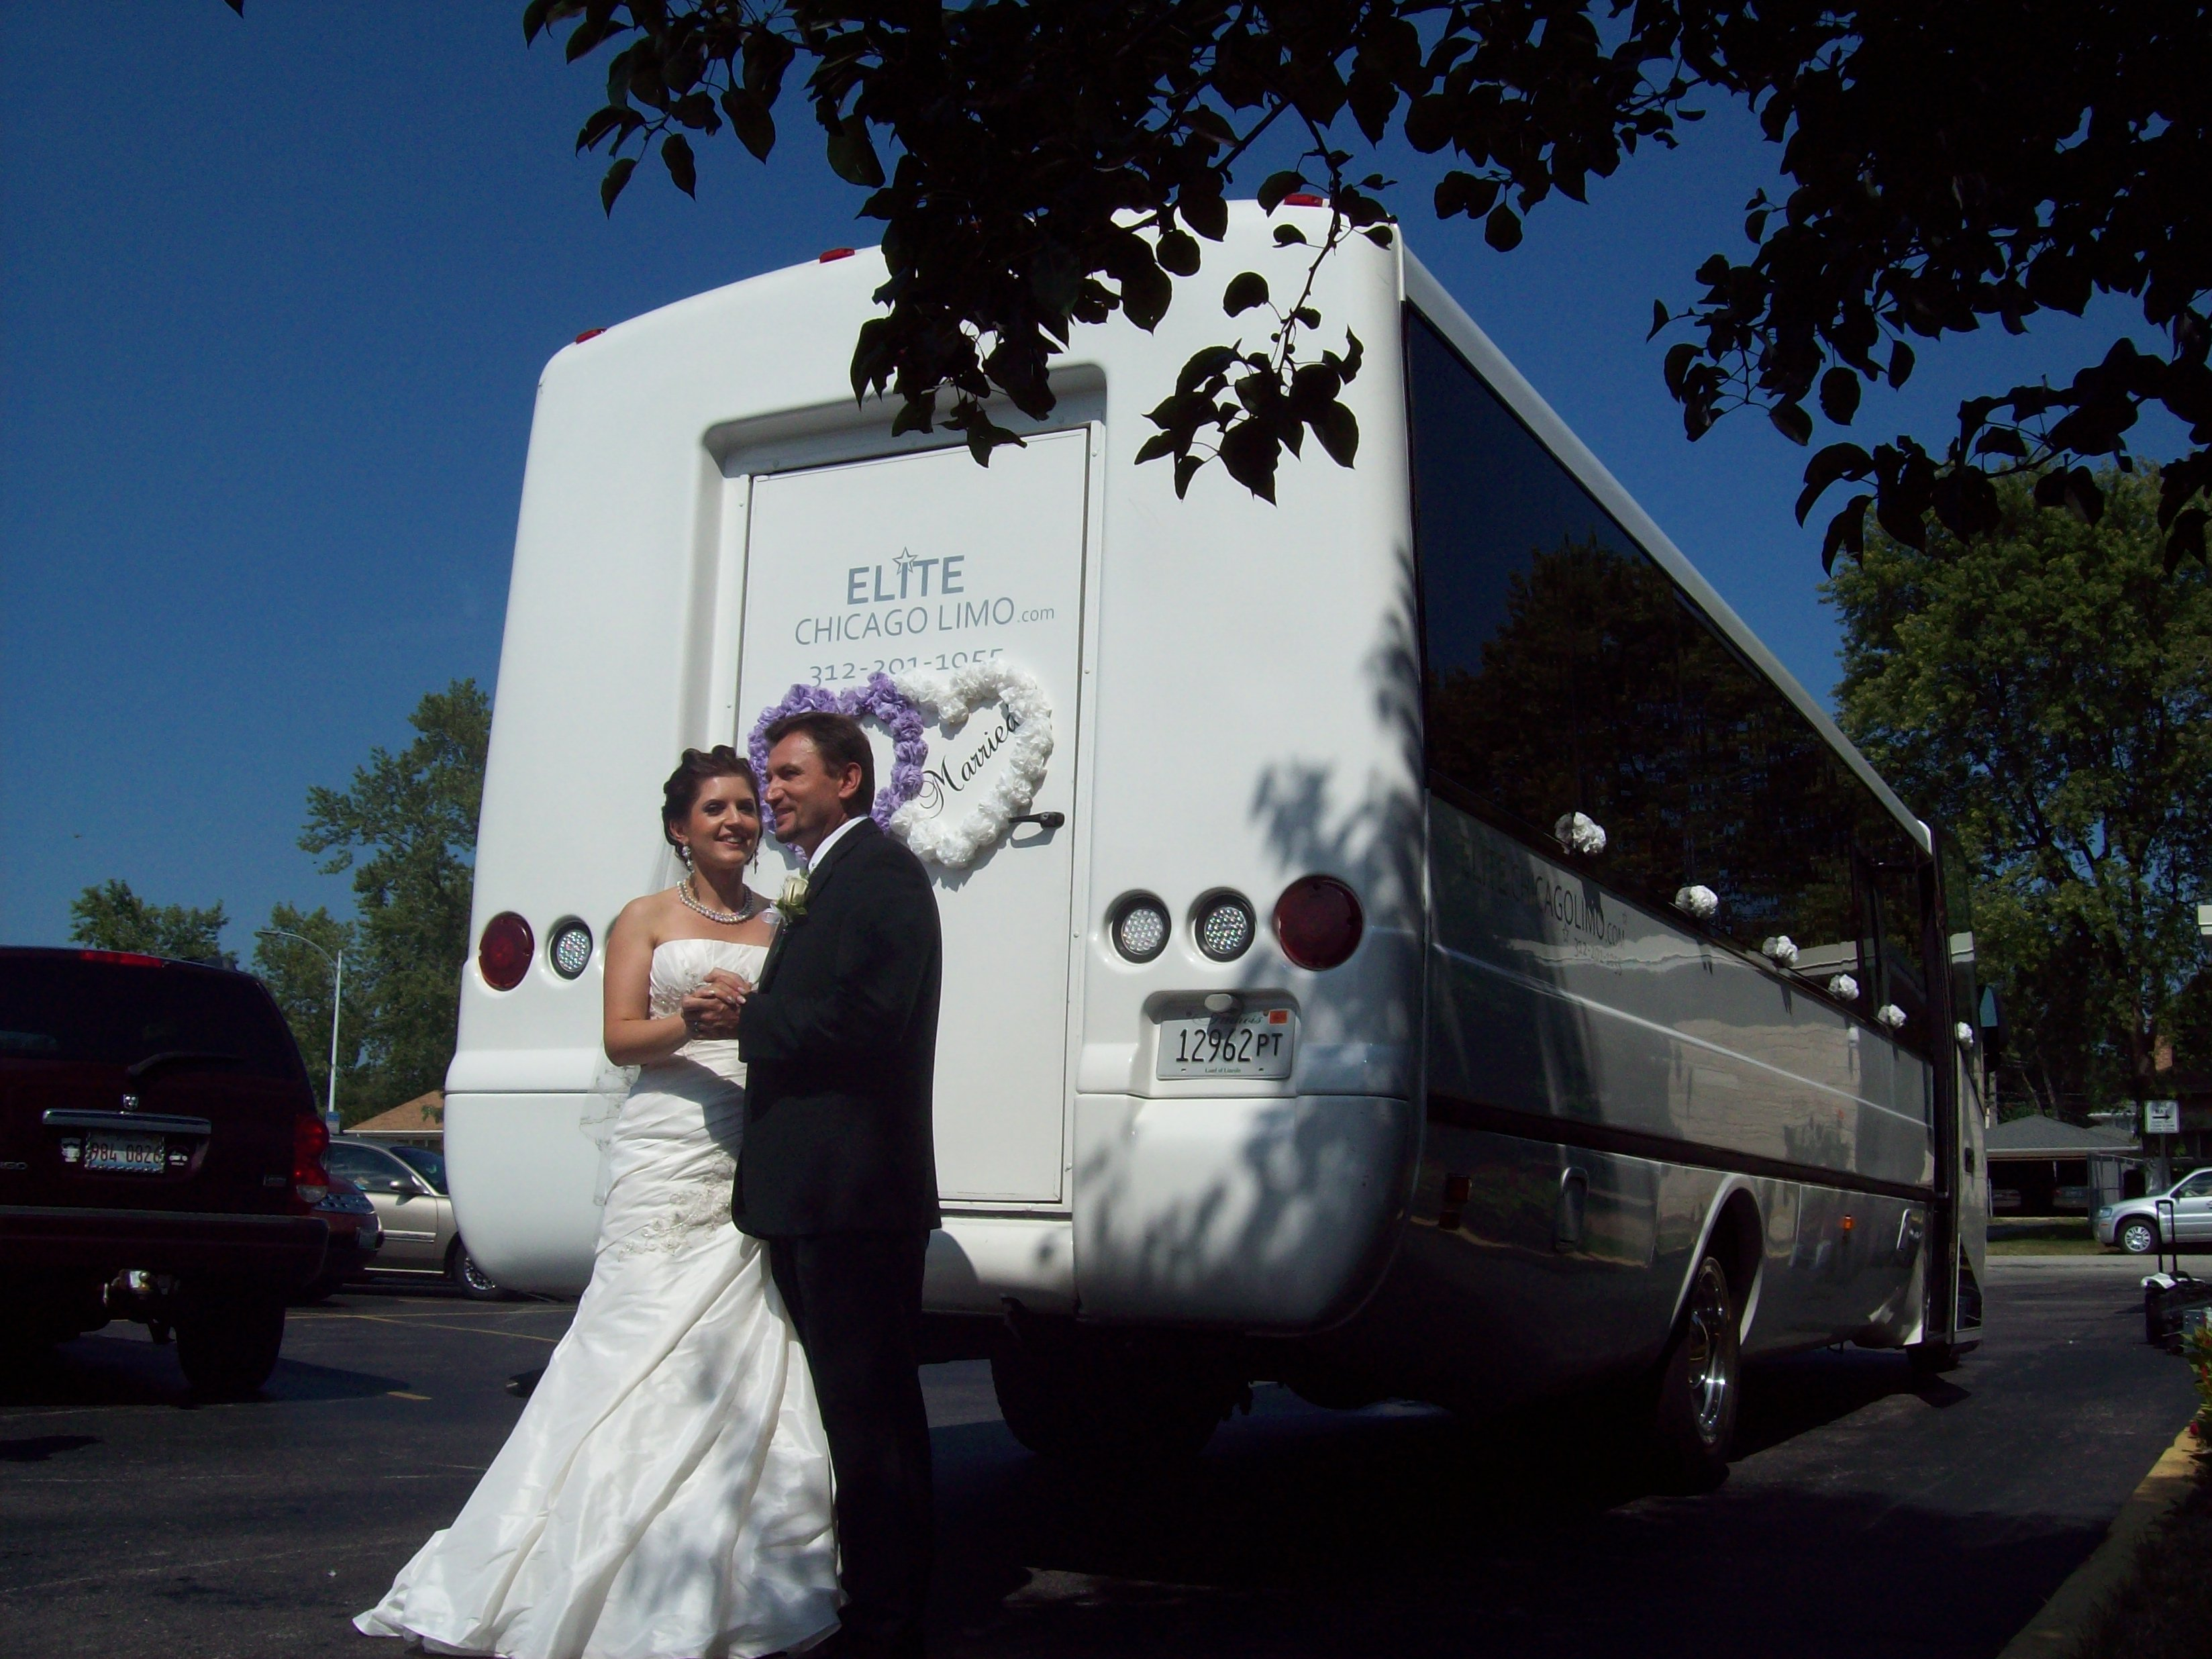 On weddings and party buses chicago limo blog